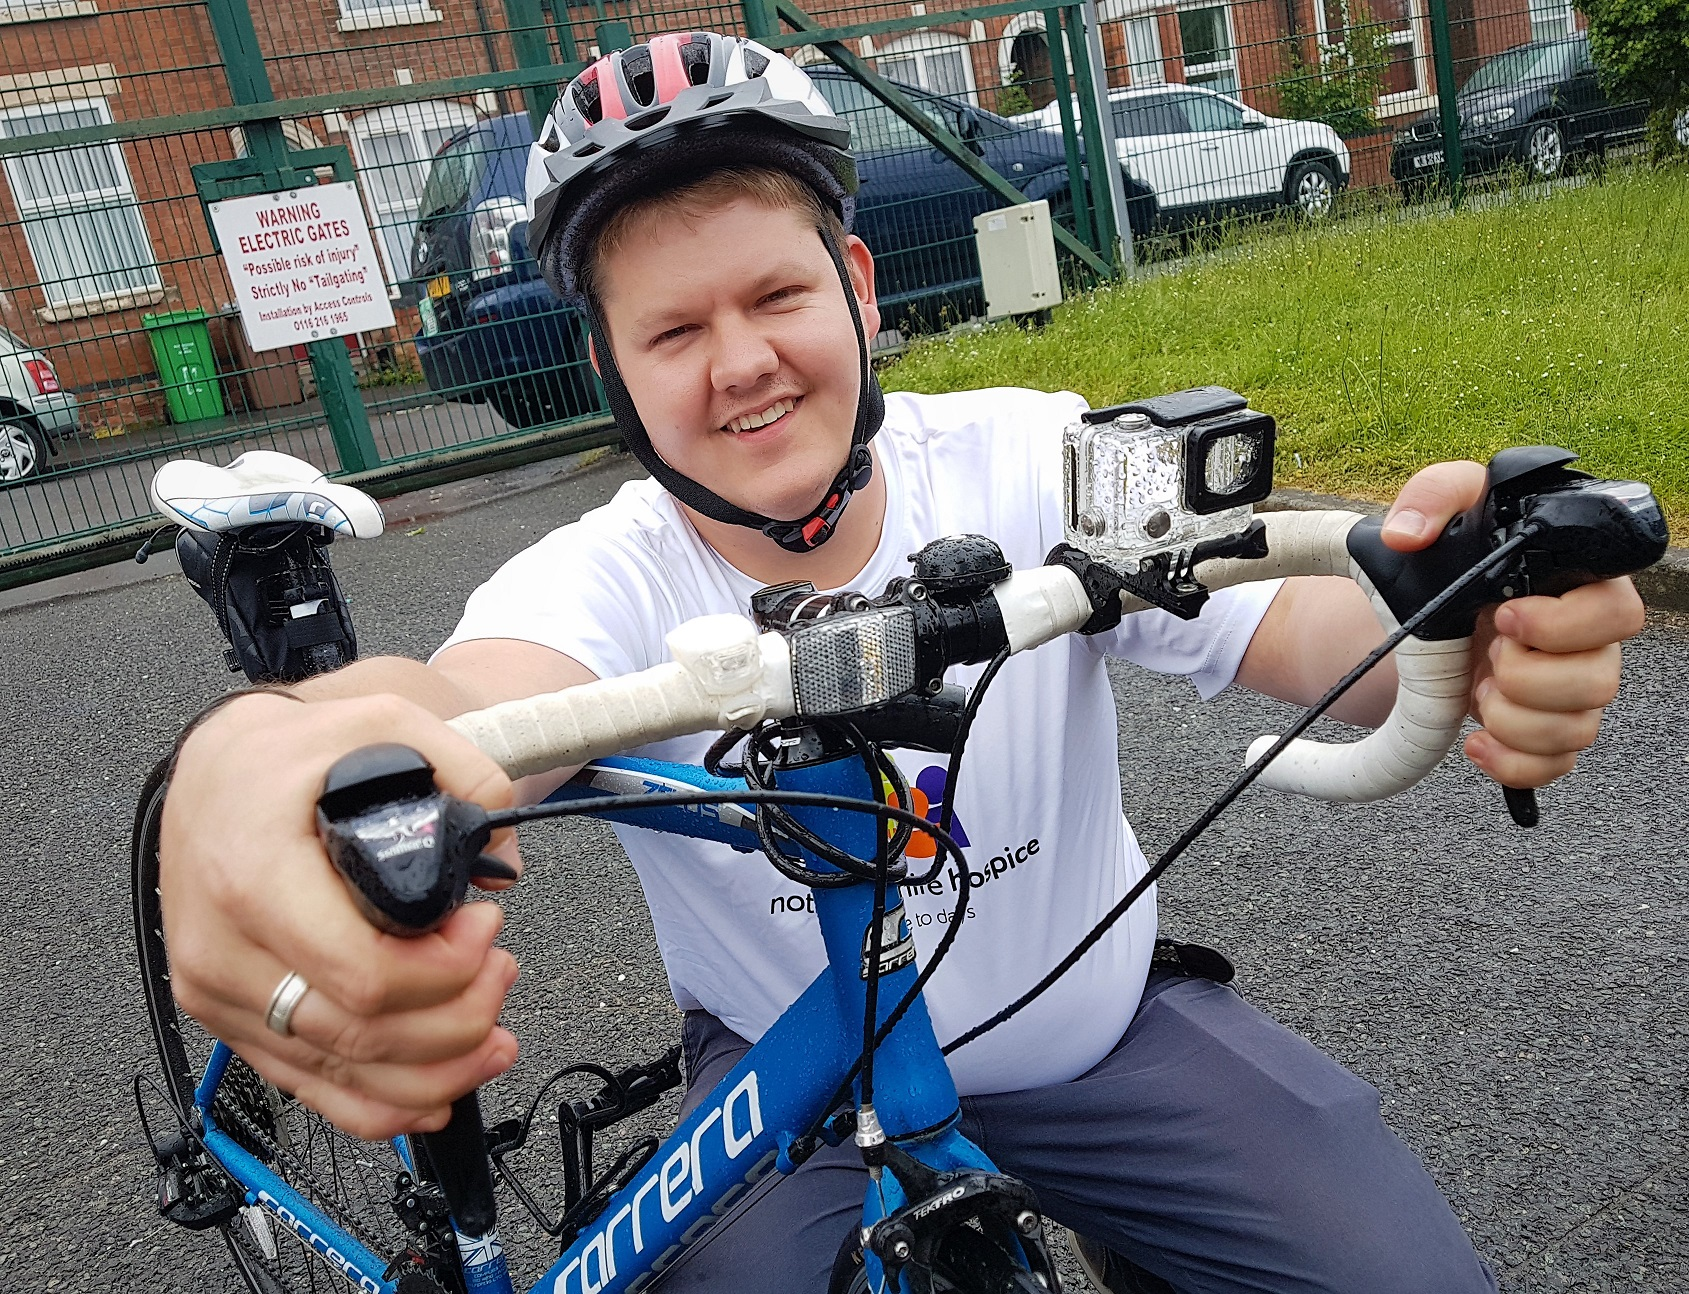 Dean Grimshaw, a school business manager from Woodthorpe, is in training to ride 50 miles in aid of Nottinghamshire Hospice. Penguin PR: public relations, communications and media.